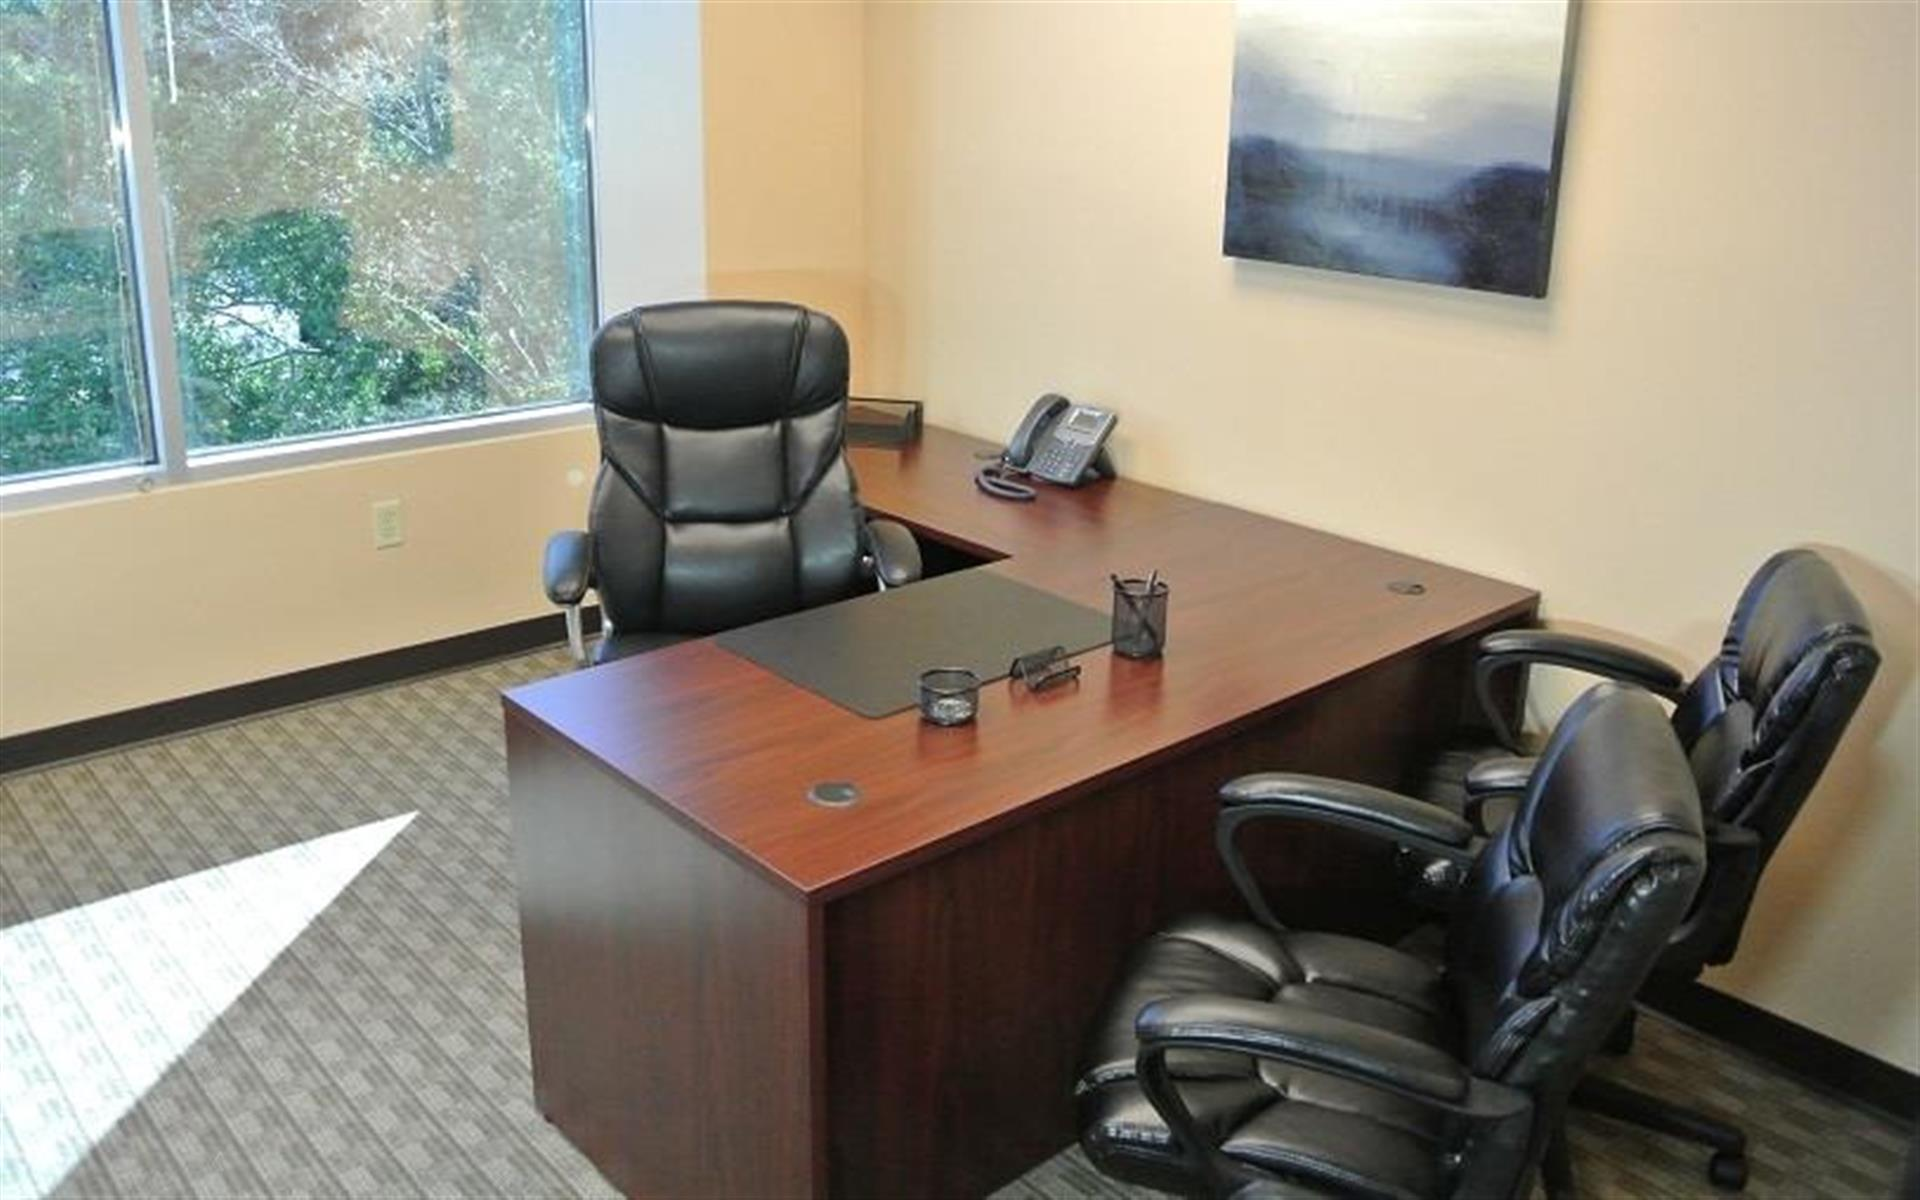 Orlando Office Center at Sand Lake Road - Office 303 - One desk Office with Window